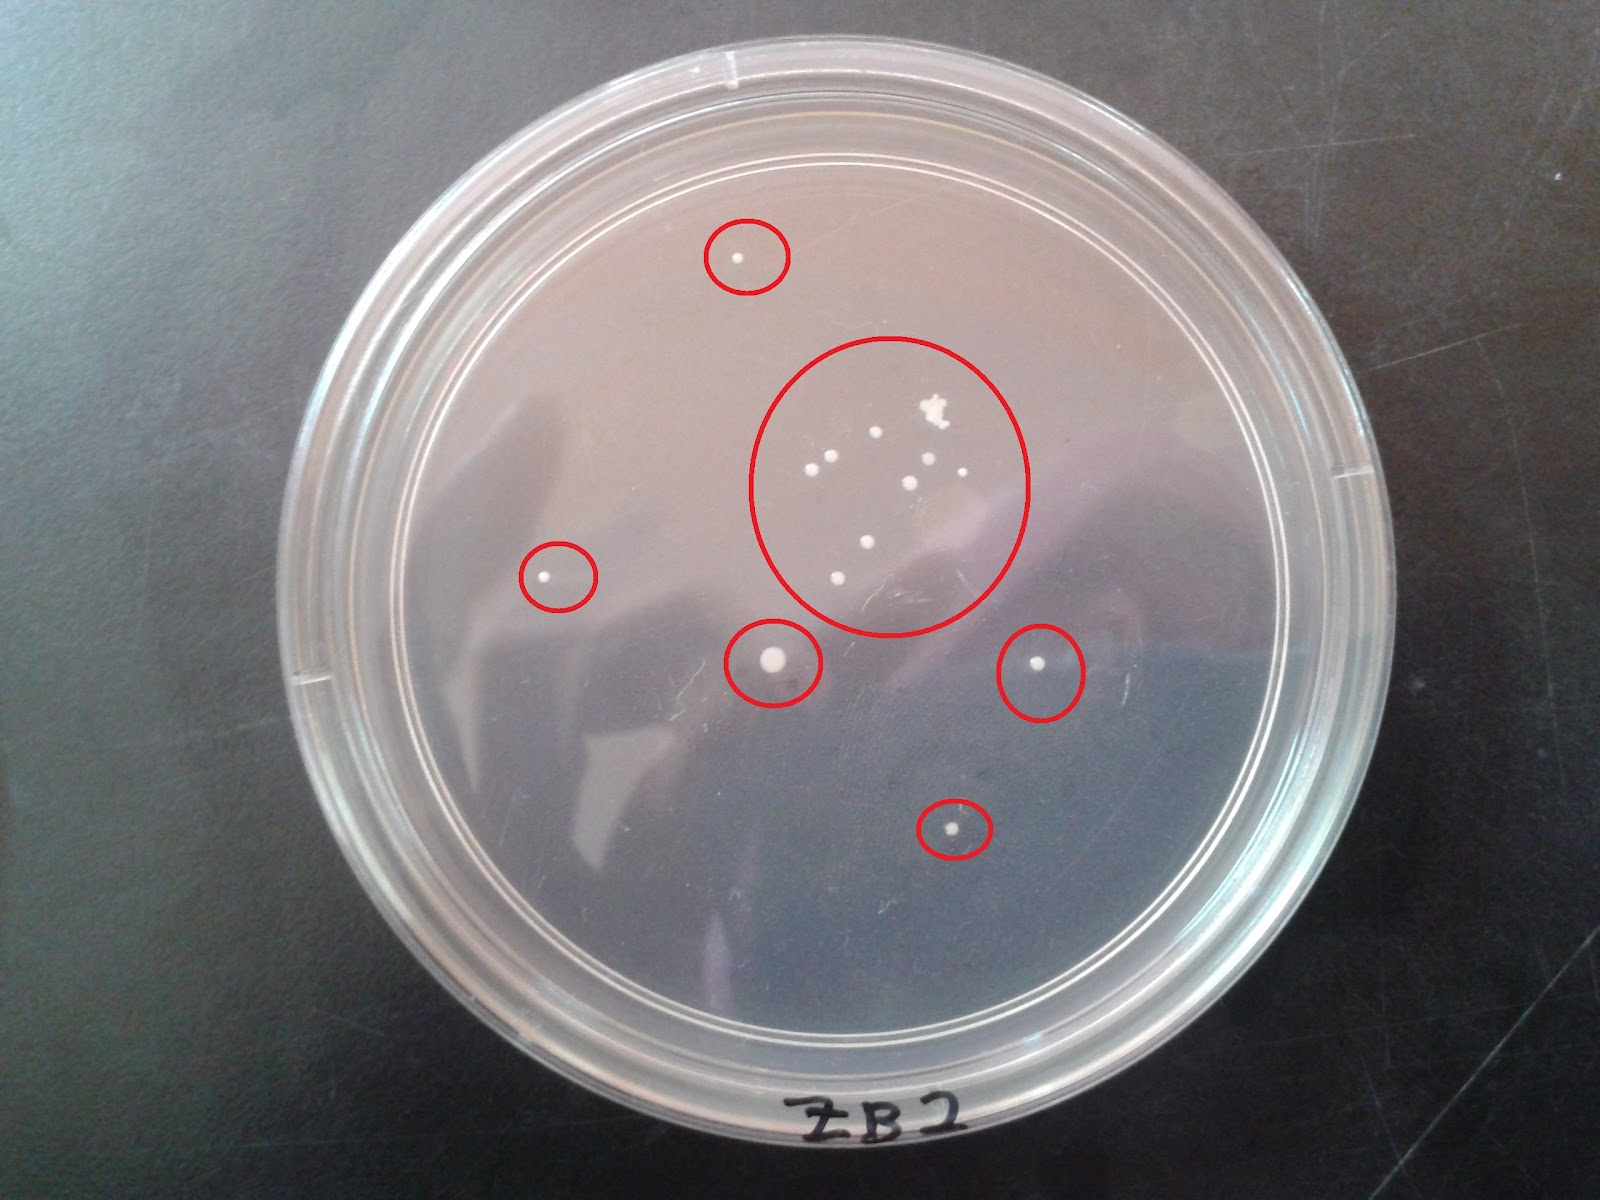 lab 1 ubiquity of microbes 1 Ubiquity of microorganisms lab report - get started with term paper writing and compose greatest term paper ever find main advice as to how to receive the greatest research paper ever writing a custom research paper is go through a lot of steps.